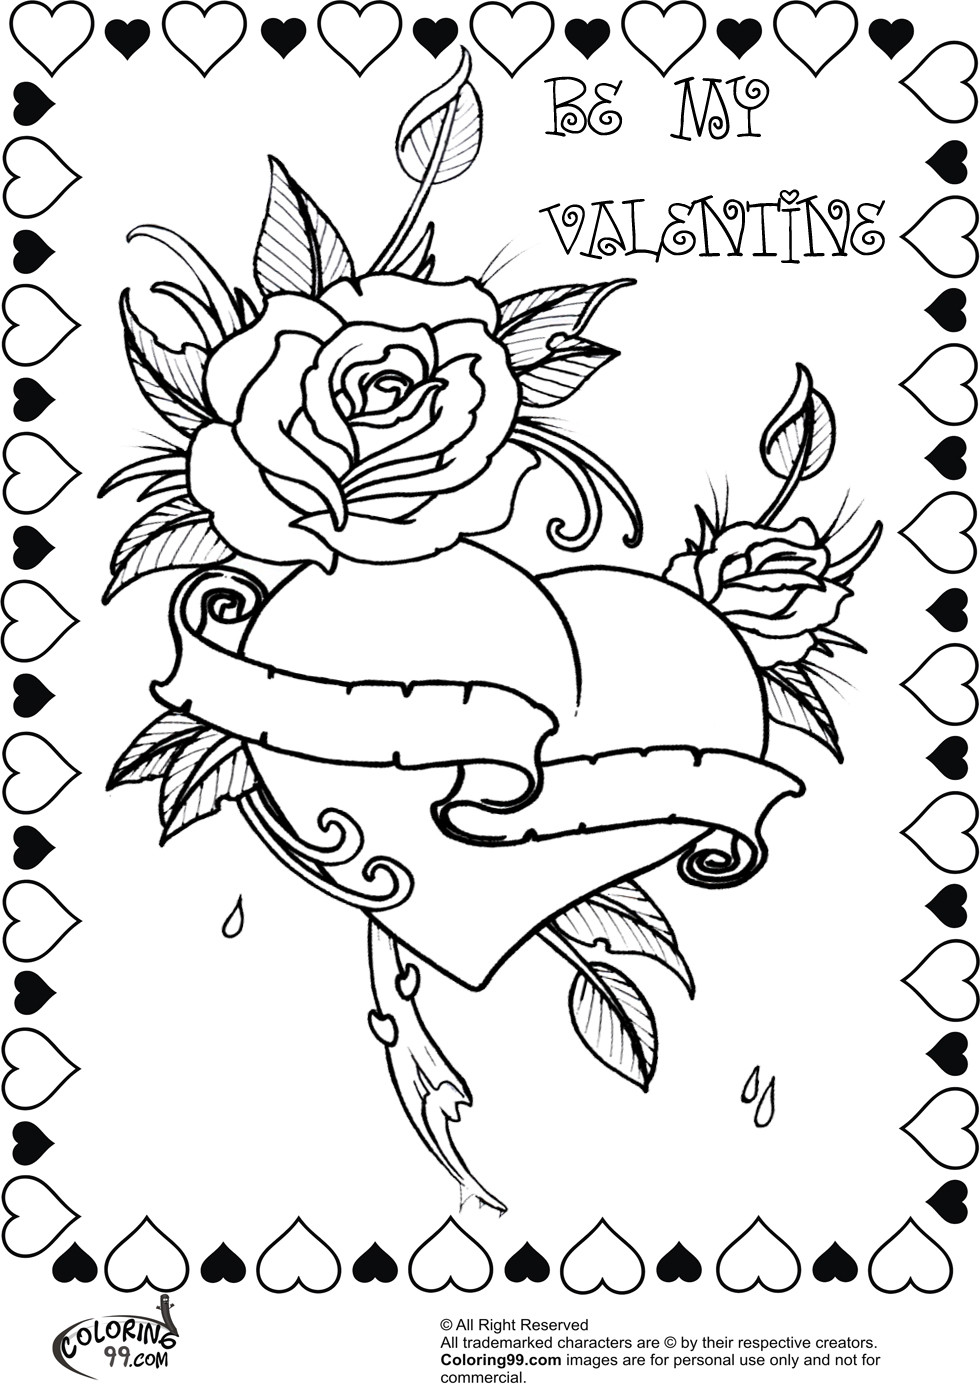 coloring pages of hearts with roses hearts and roses coloring pages getcoloringpagescom of coloring hearts roses pages with